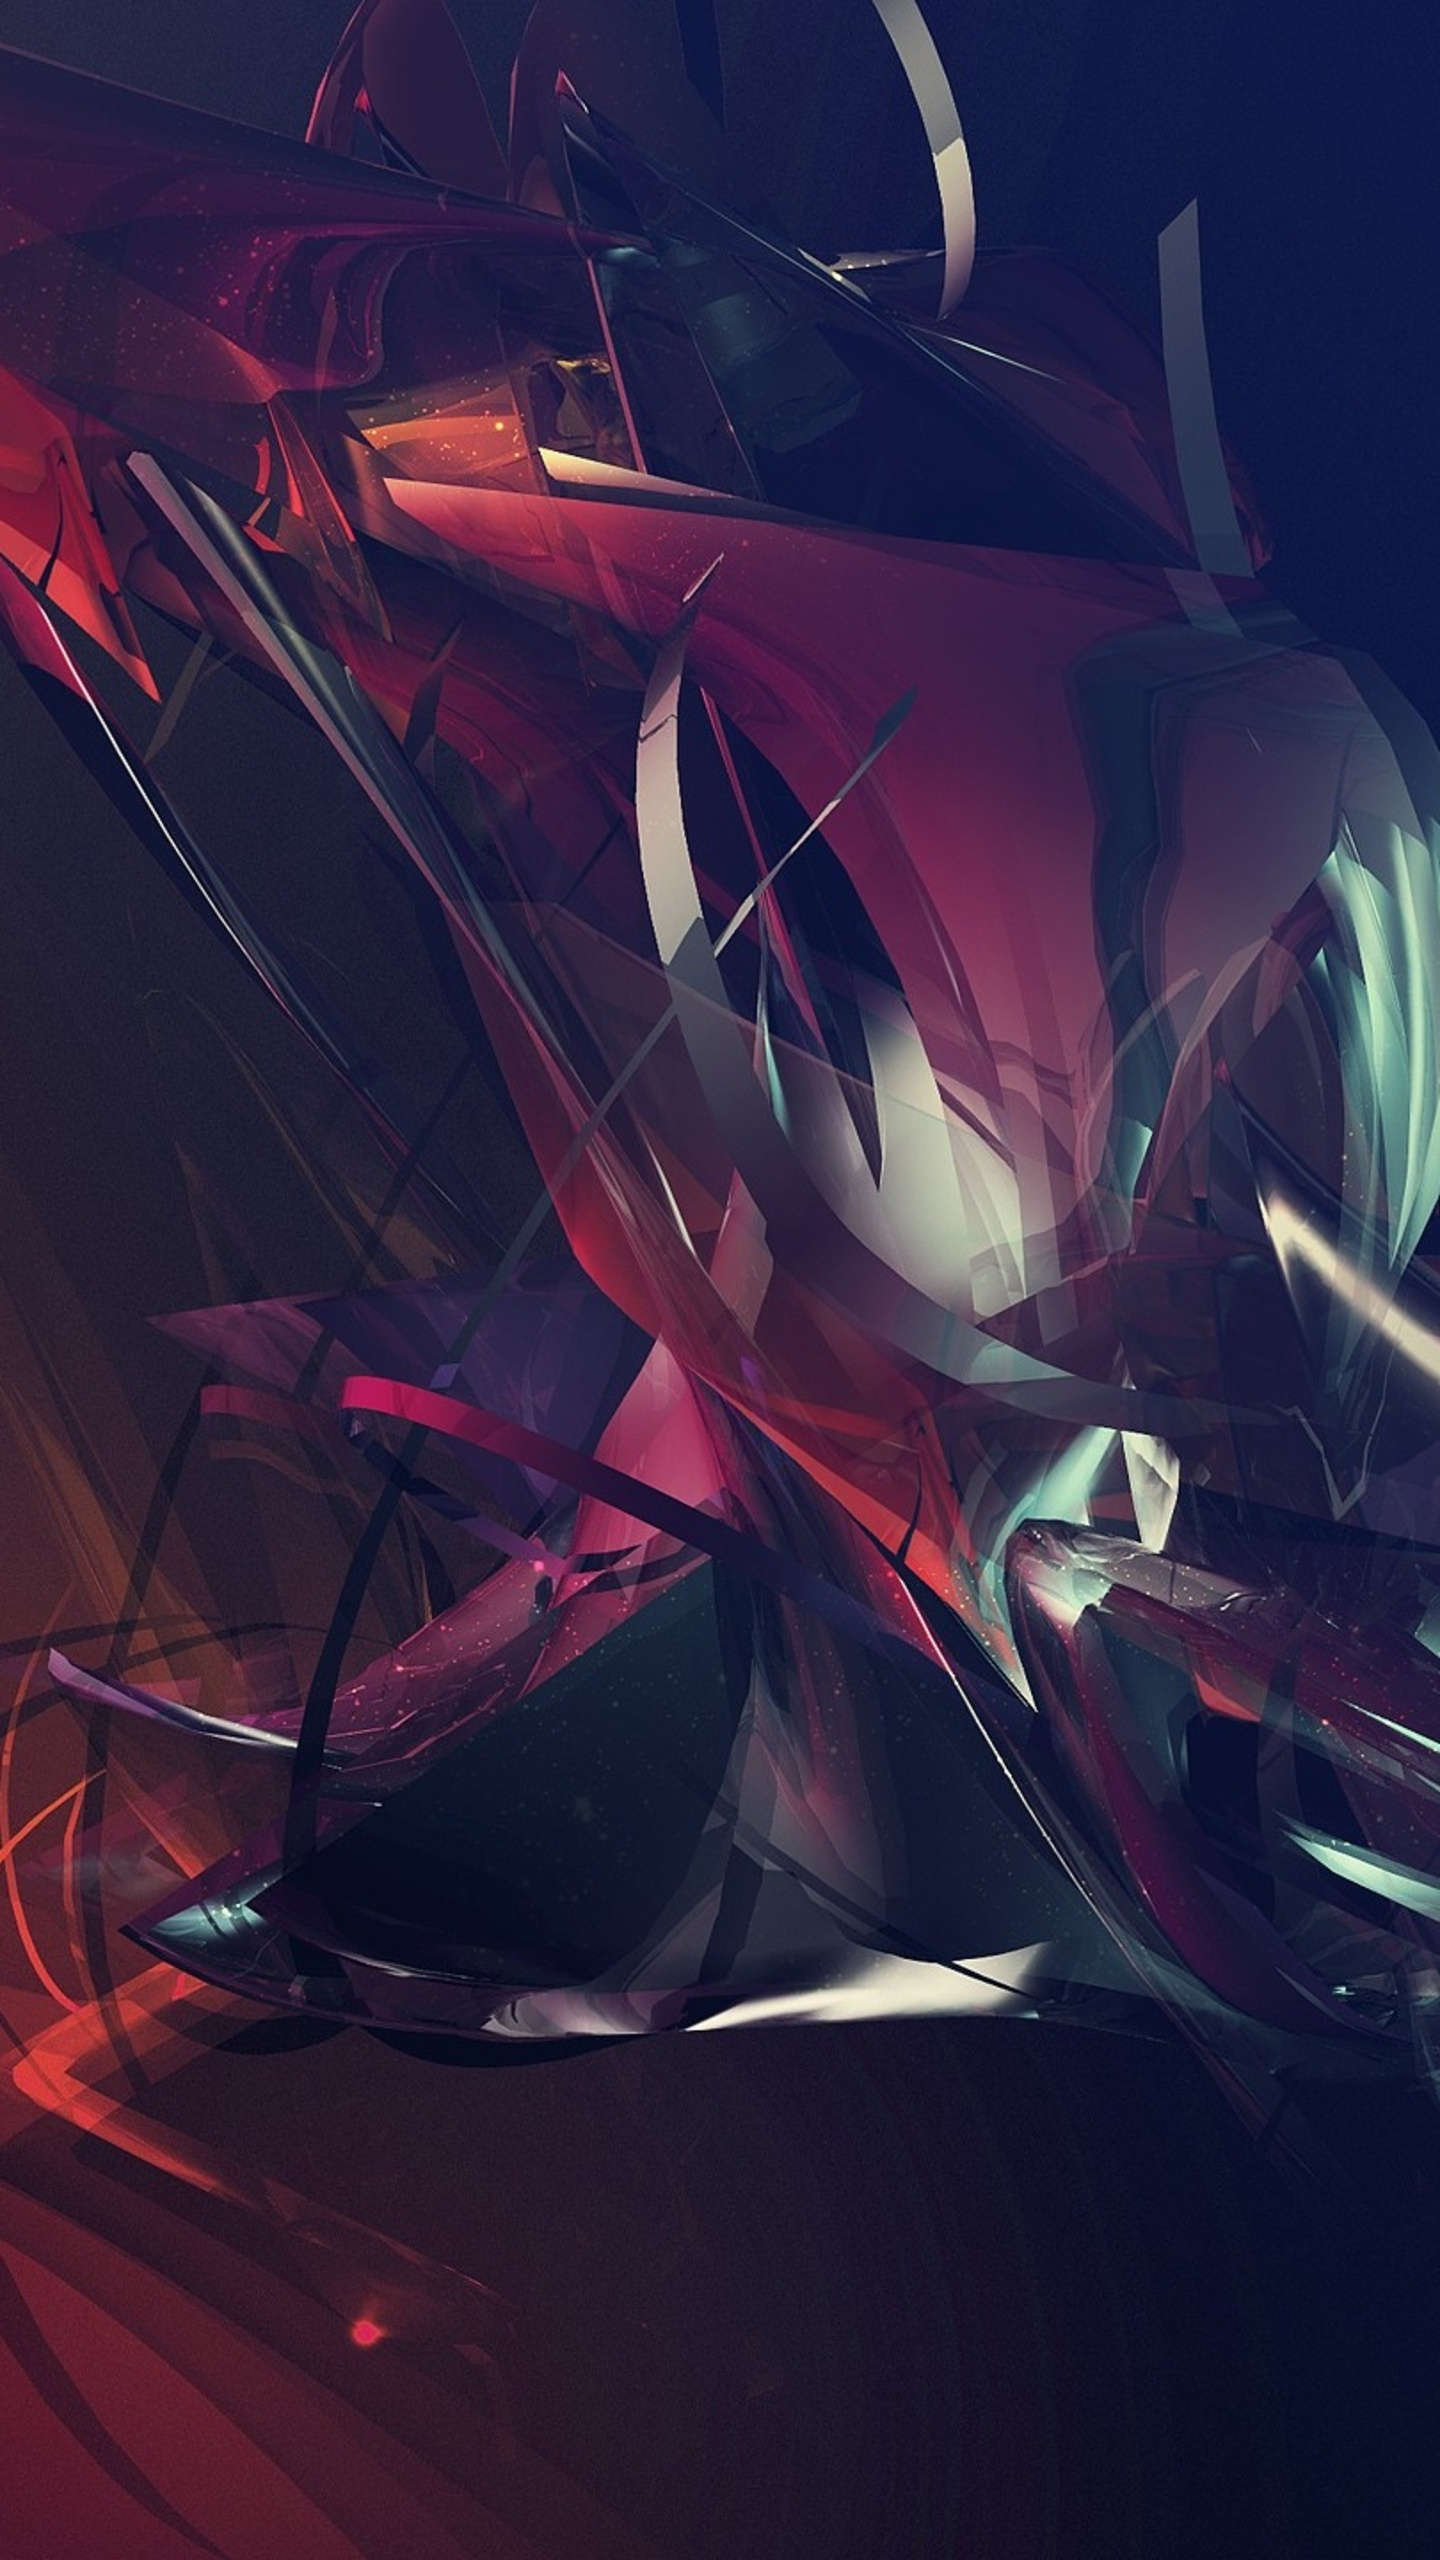 1440x2560 Justin Maller Abstract Shapes Samsung Galaxy S6 S7 Google Pixel Xl Nexus 6 6p Lg G5 Hd 4k Wallpapers Images Backgrounds Photos And Pictures